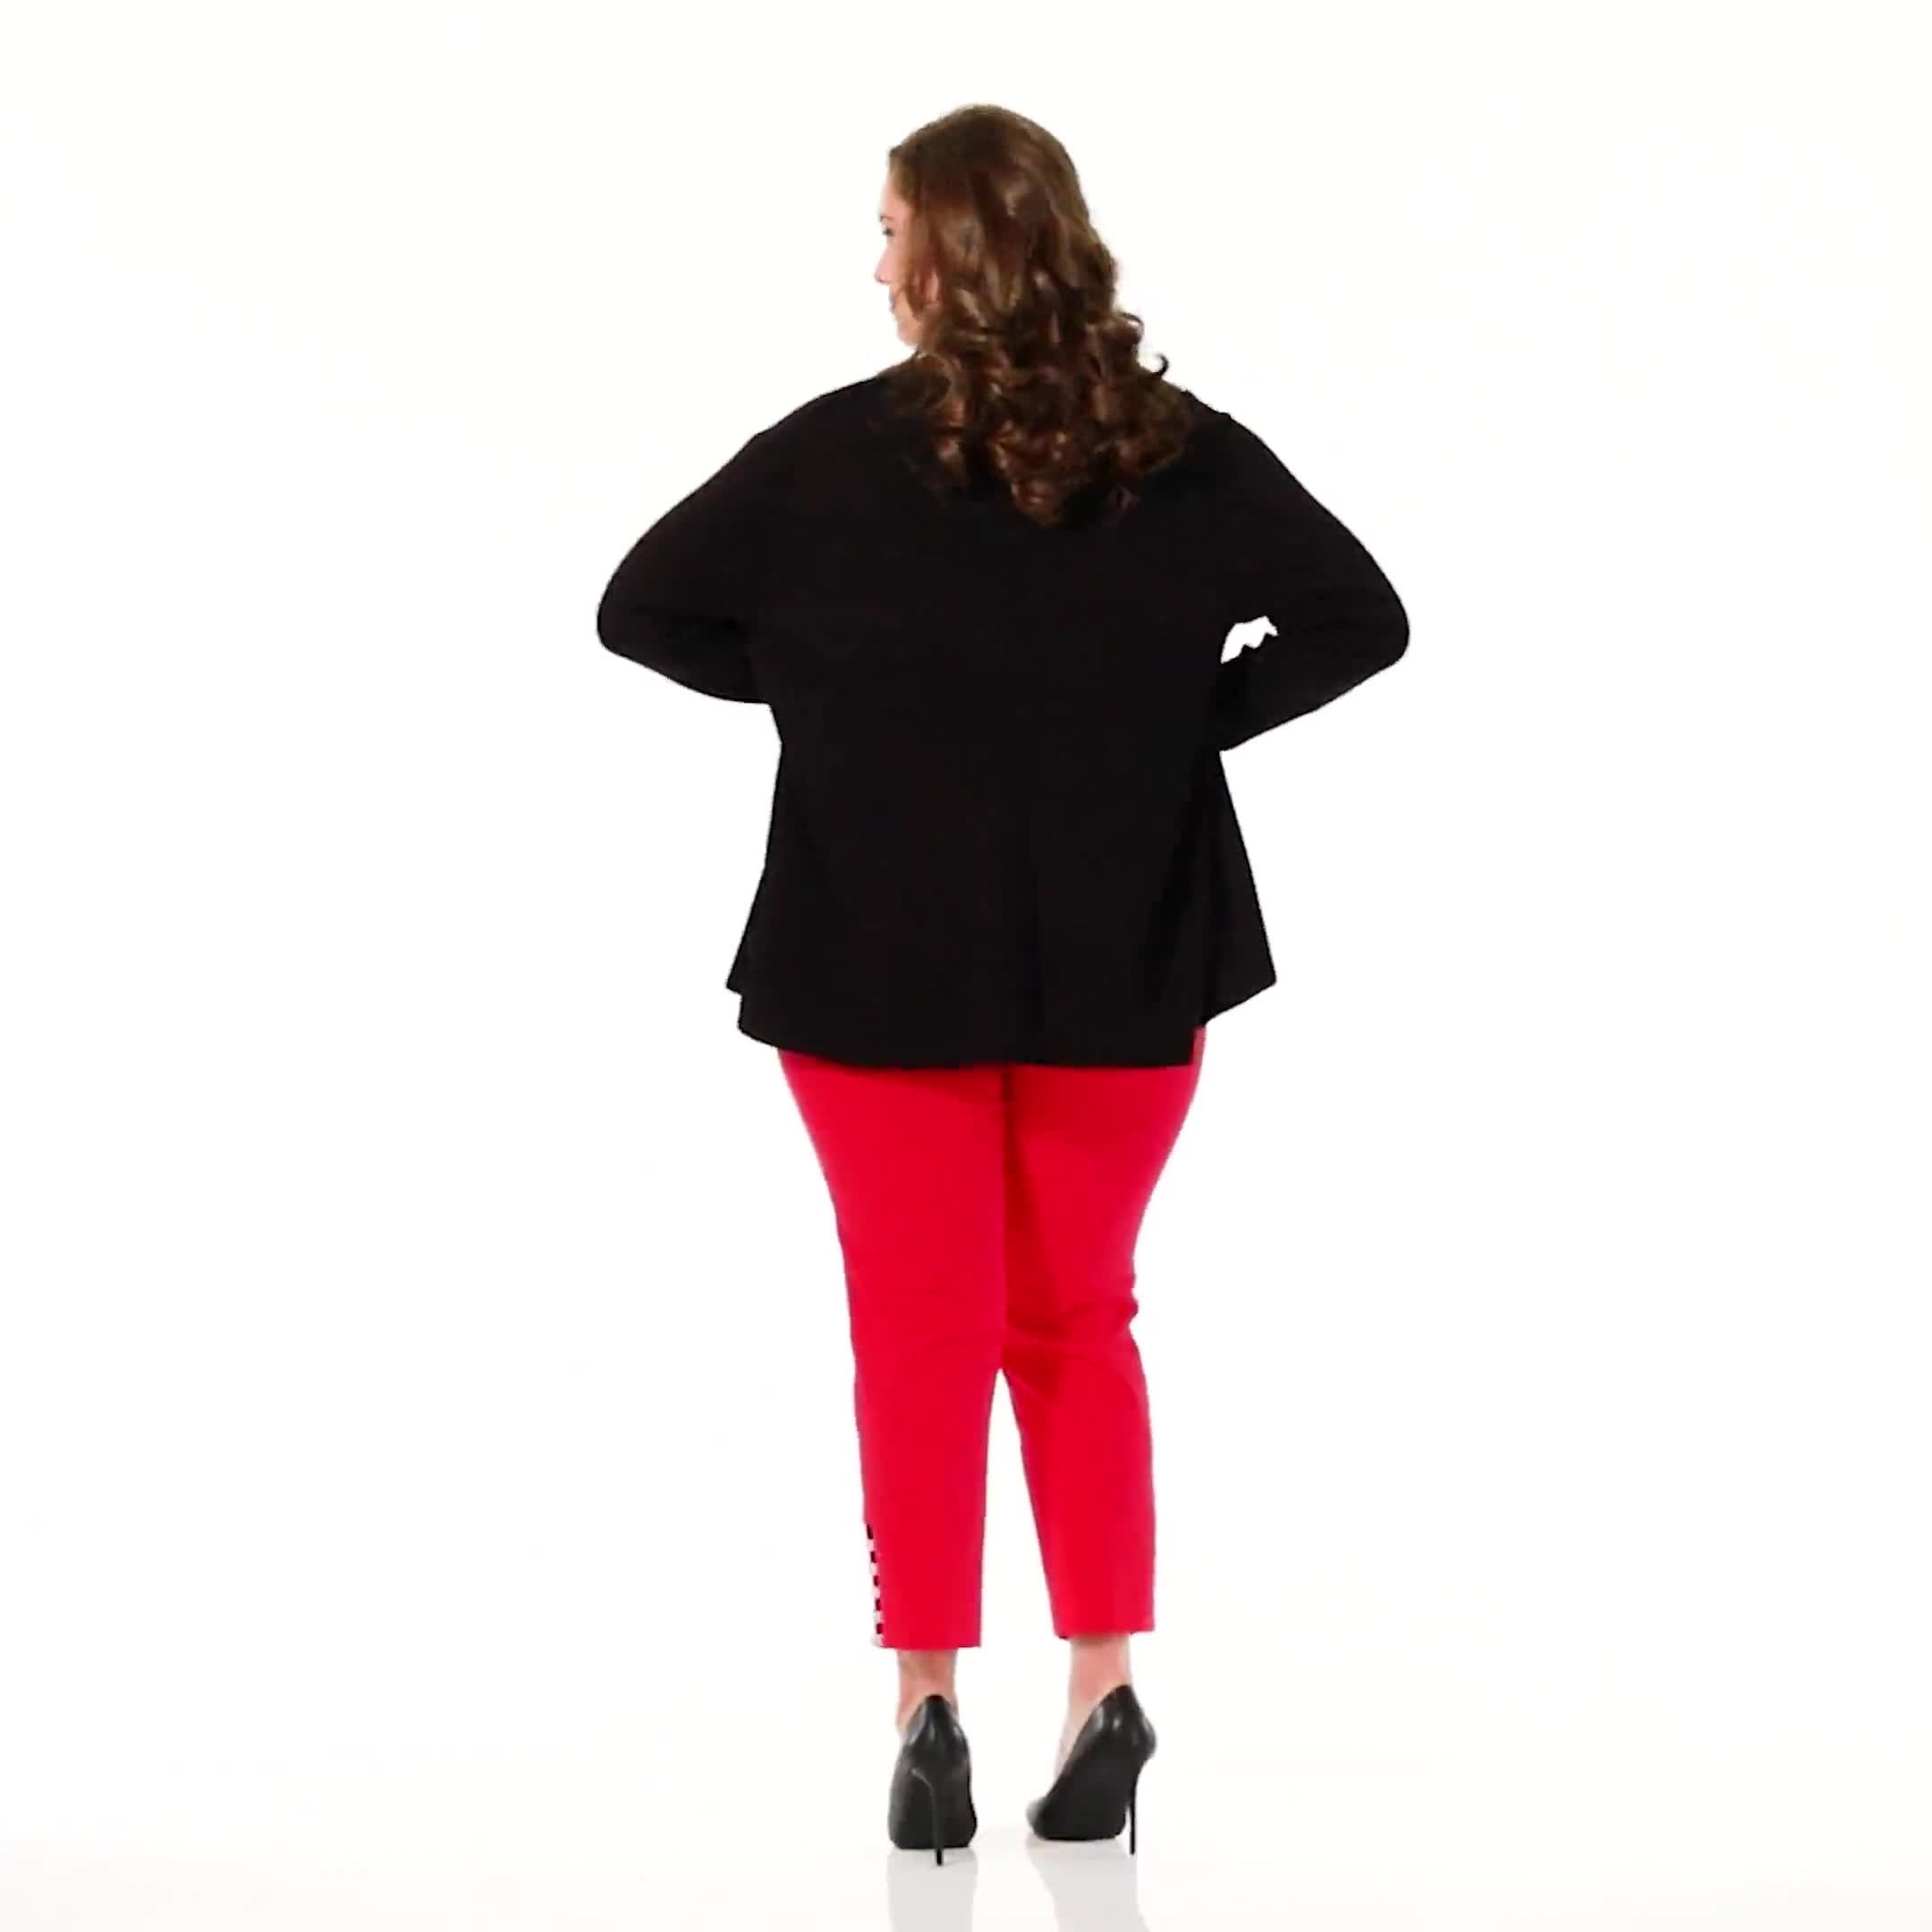 Plus Roz & Ali Pull On Superstretch Ankle Pants with Heat Seal Band Trim - Plus - Video